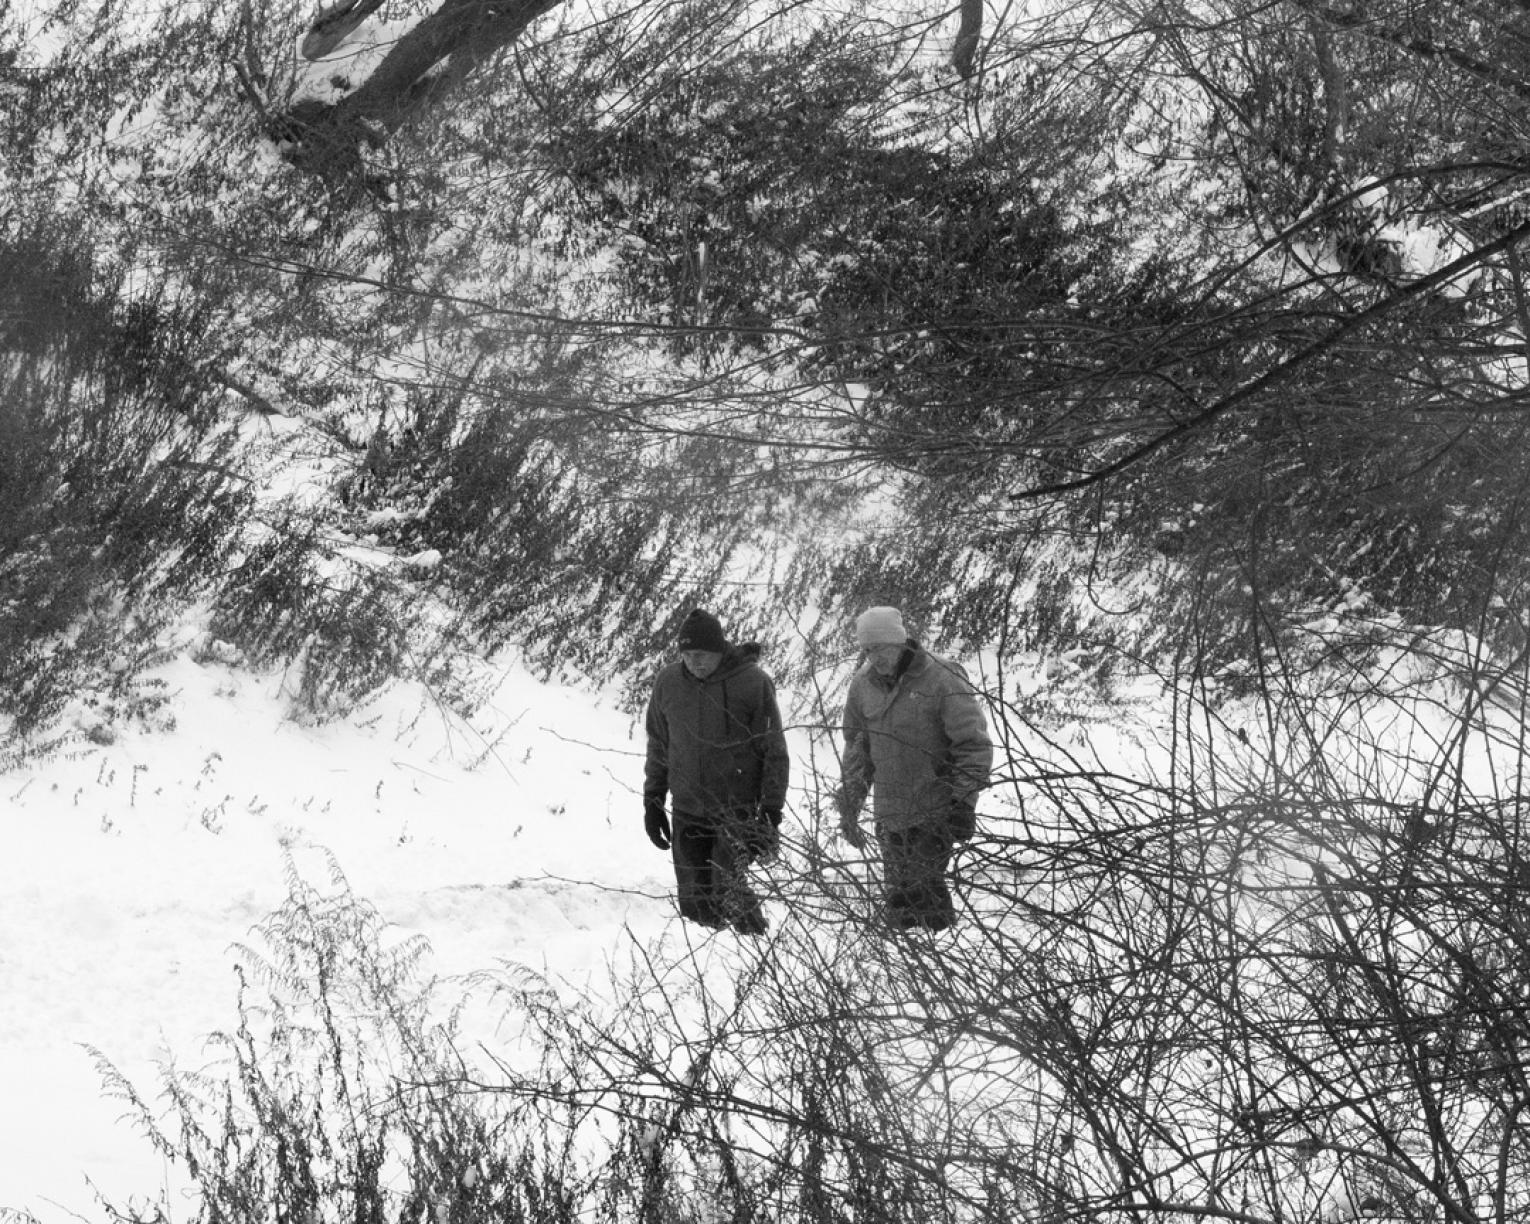 Black and white photograph of two men walking on snowy road